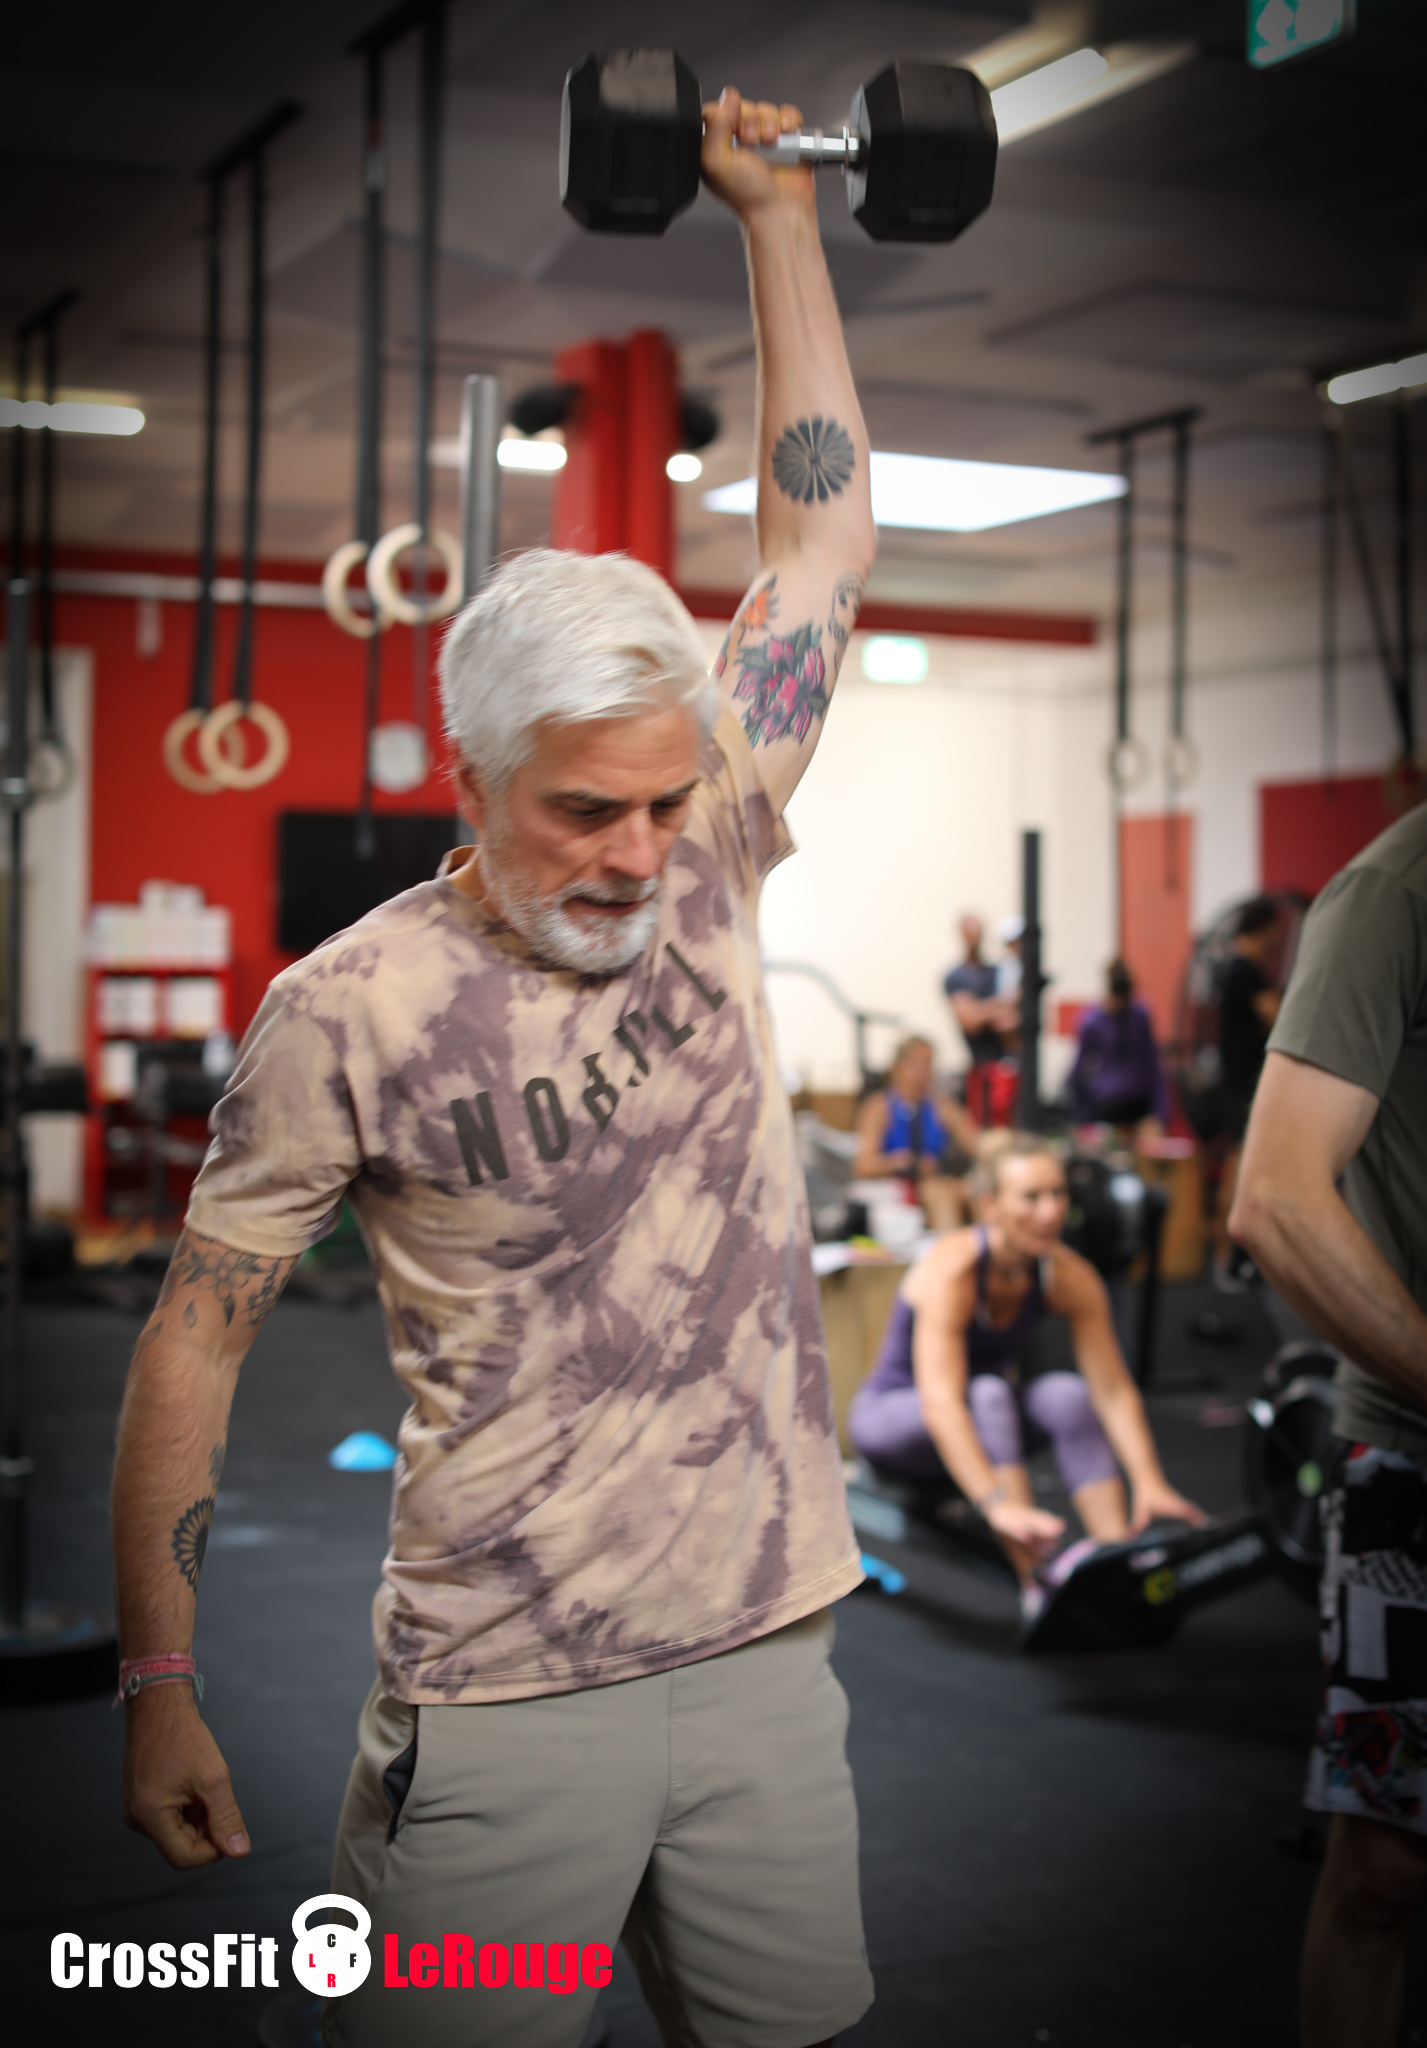 CrossFit team-WOD farmer-carry pull-ups power-snatches